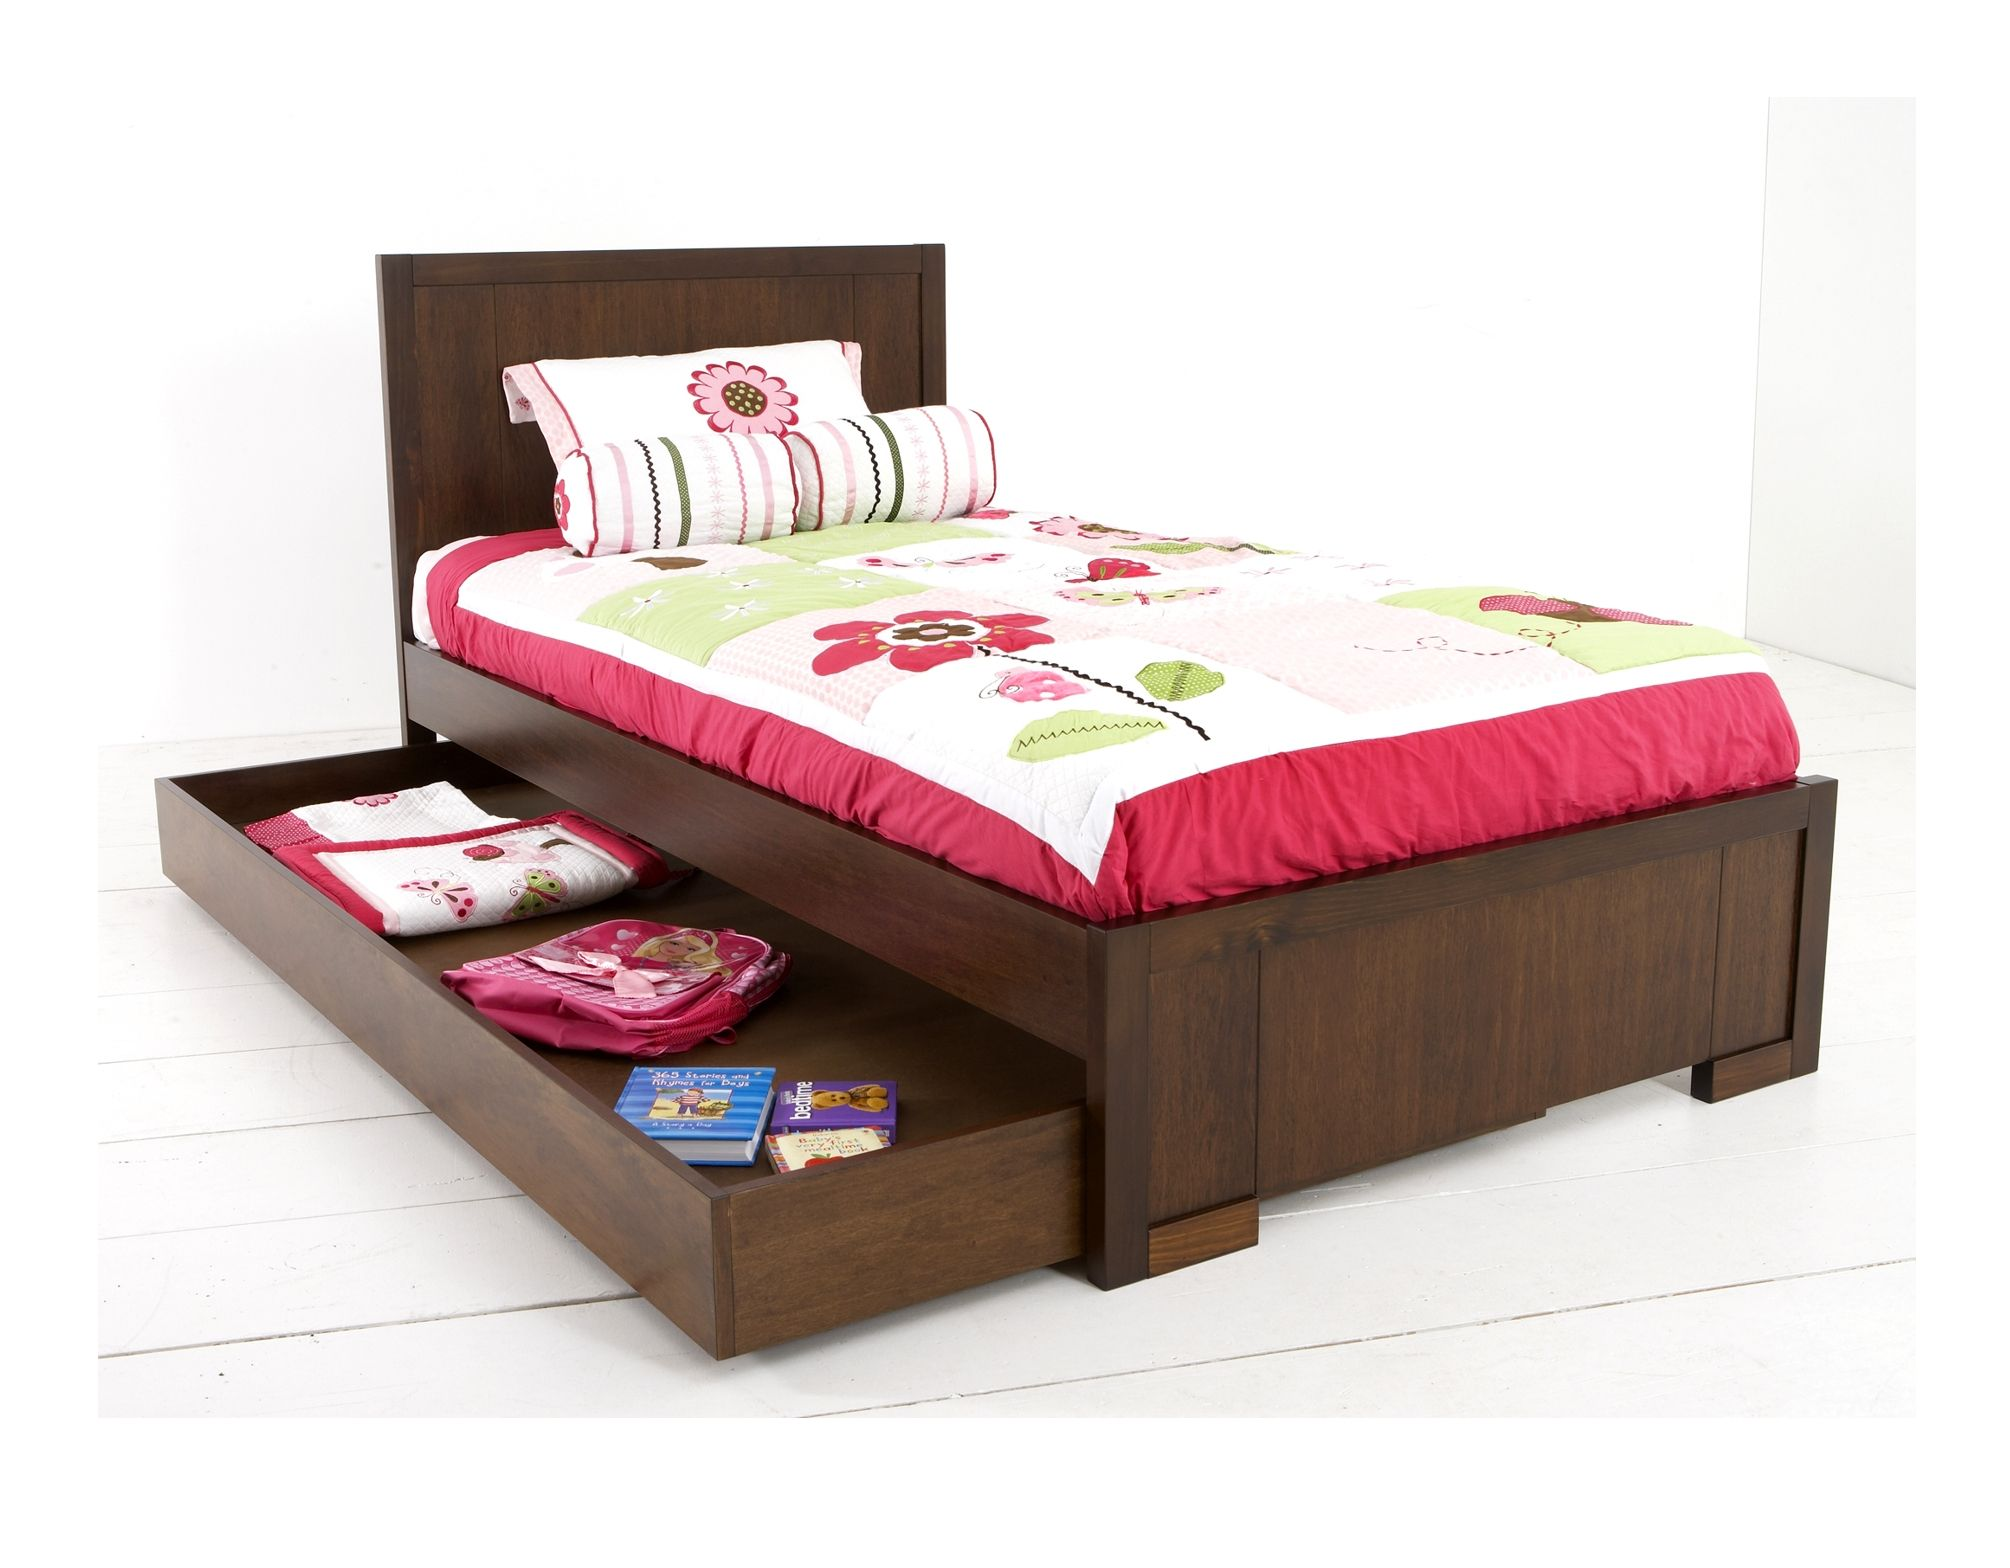 Explore King Single Bed Beds And More